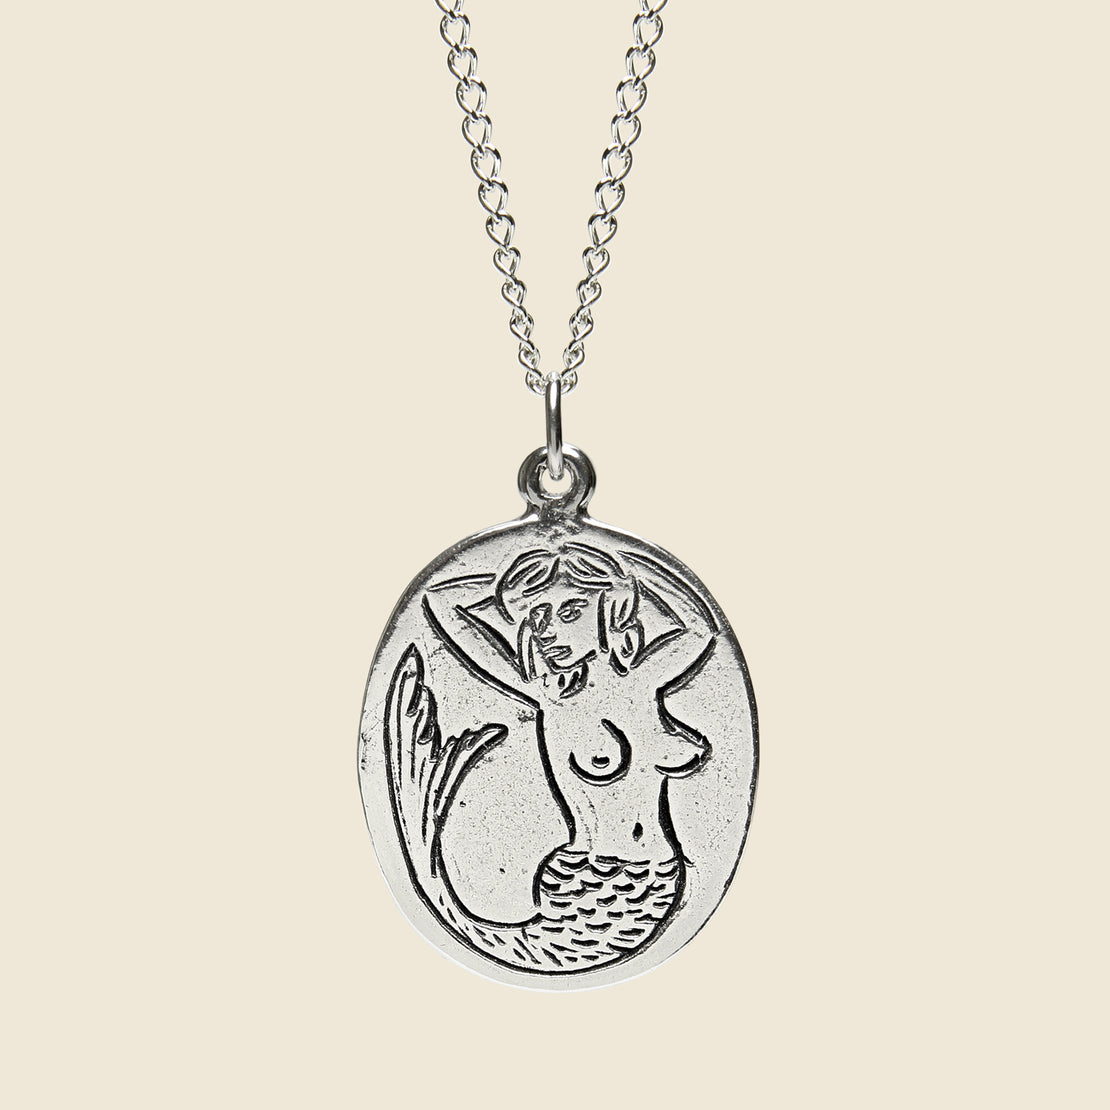 LHN Jewelry Mermaid Necklace - Sterling Silver